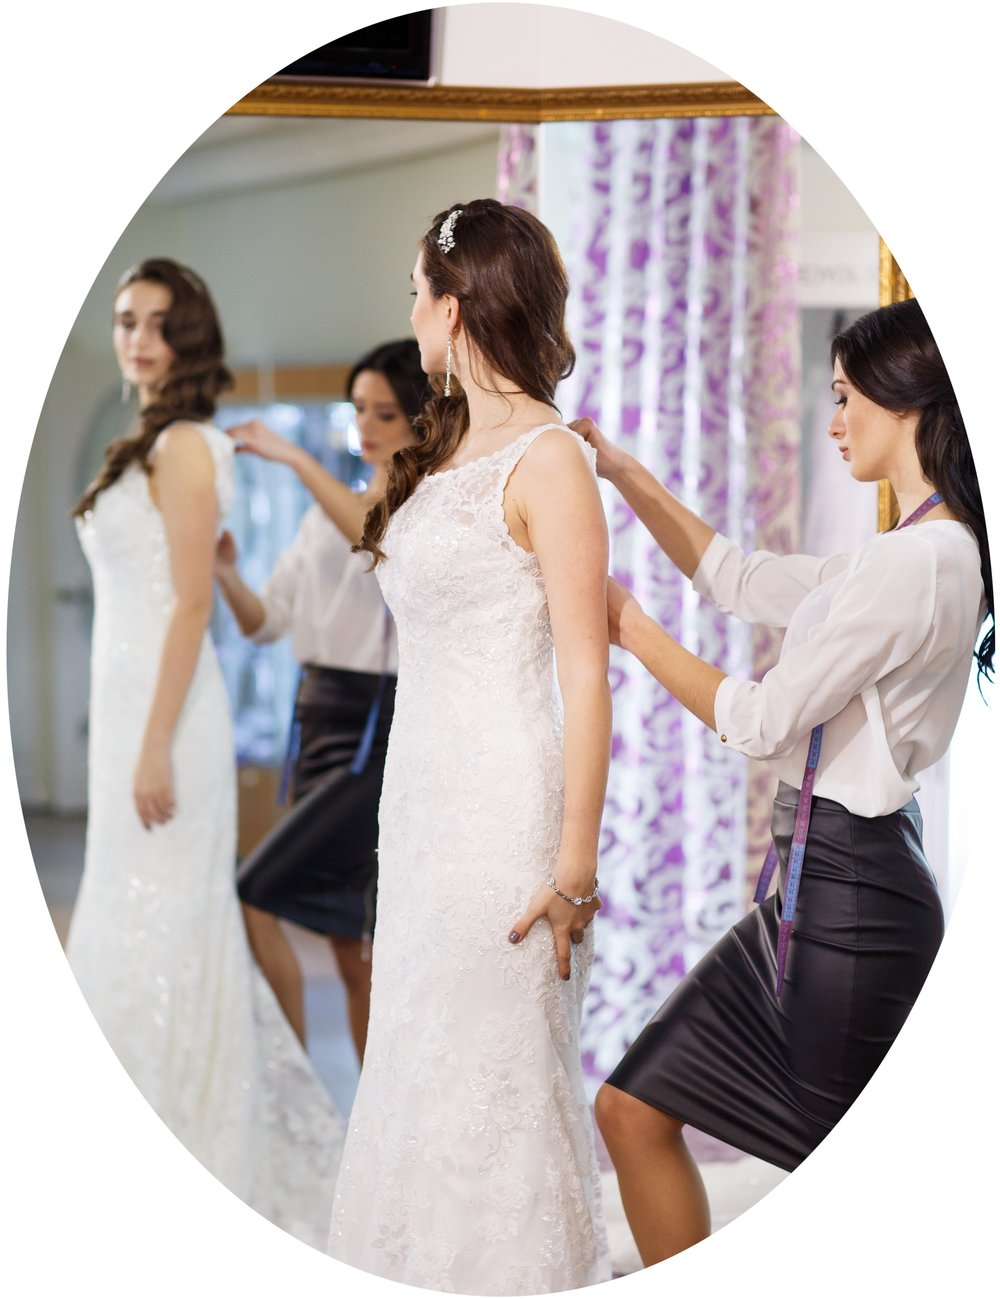 Stylist of the Year - The STYLIST OF THE YEAR application is LIVE! From now until FEBRUARY 1, 2019, we are officially accepting nominations for the Do You Speak Bride STYLIST OF THE YEAR!!!Last year, our inaugural Stylist of the Year award winner was Patty Smulski from Norman's Bridal. Her work ethic, her passion to create life moments for her brides, and her incredible connection with her community, make us so proud to say that Patty was our first Stylist of the Year.It's so hard to believe another year has passed, but we are now searching for our 2018 Do You Speak Bride Stylist of the Year! Are you ready to enter?! We are SOOOOO pumped about this award, and we can't wait to see the amazing stylists that enter this year!